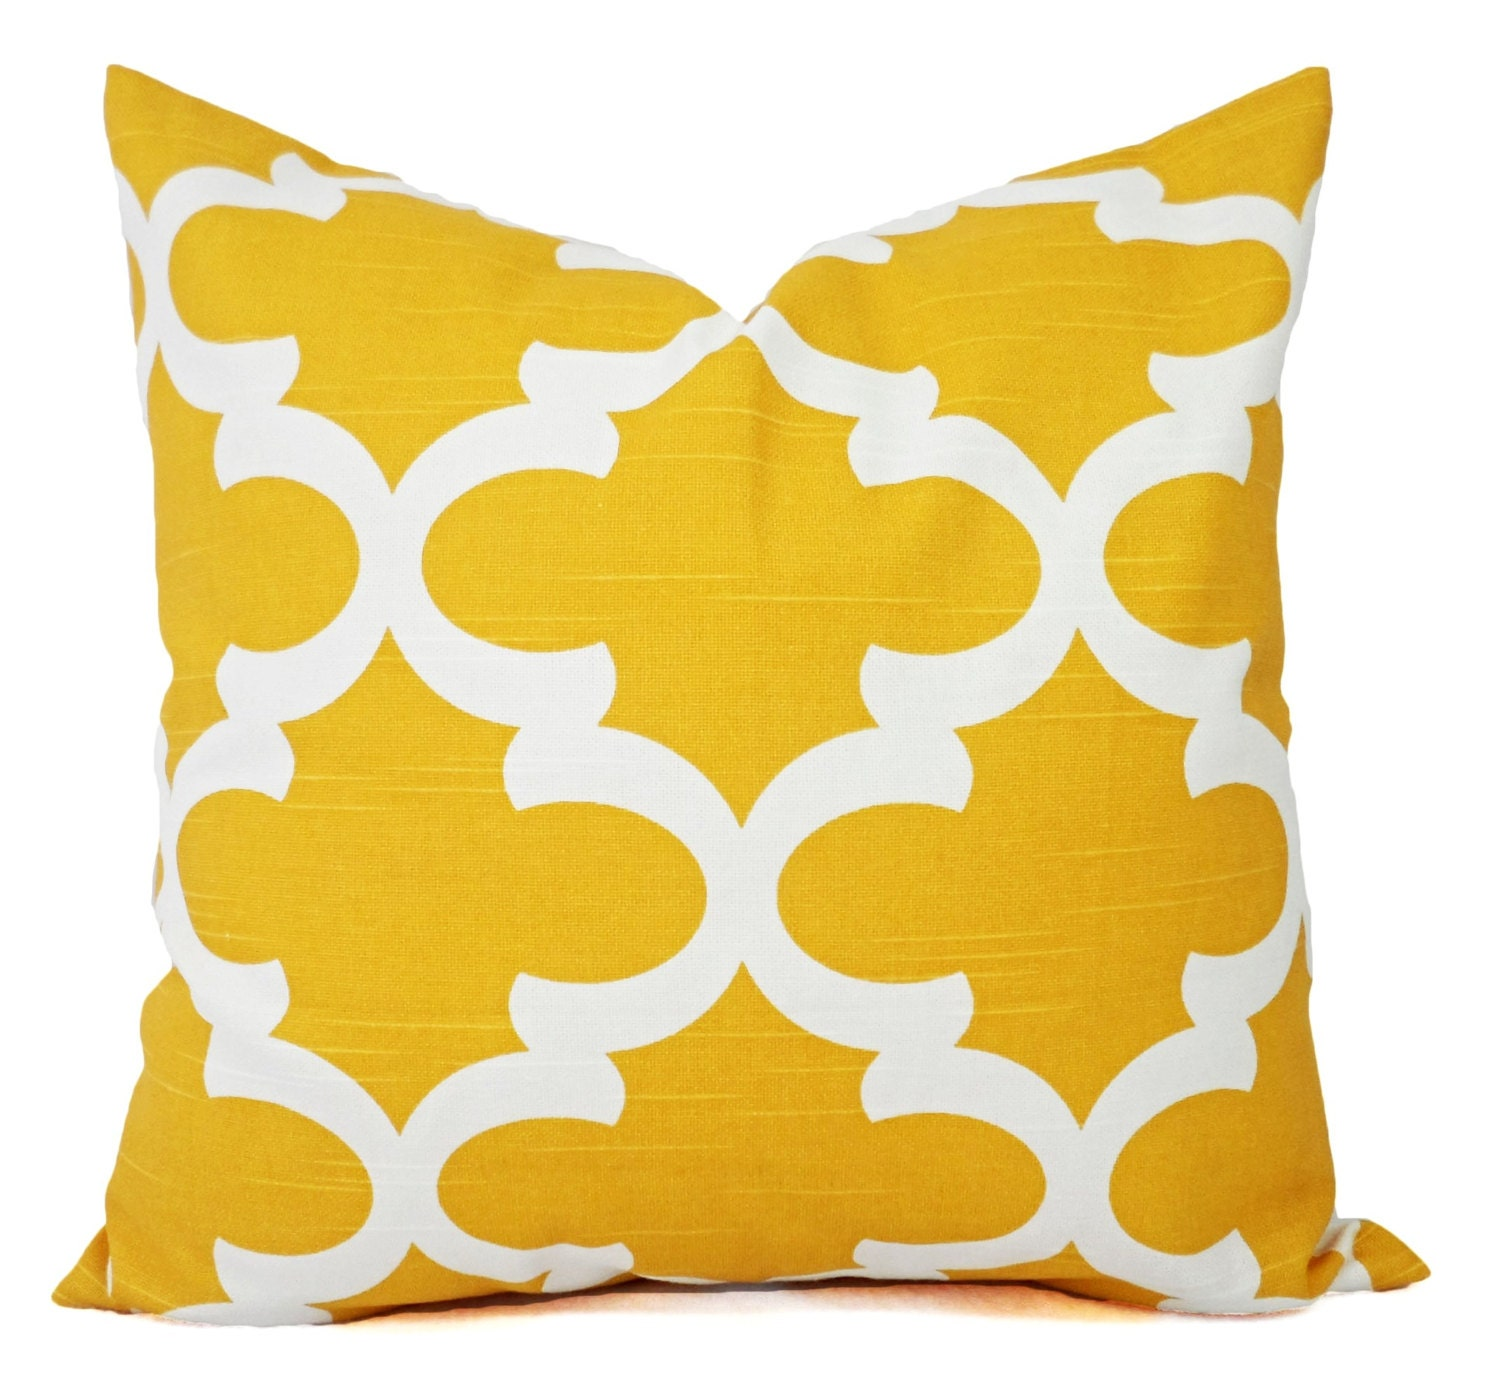 Decorative Pillow Yellow : Yellow Decorative Pillows Two Yellow Throw Pillow Covers